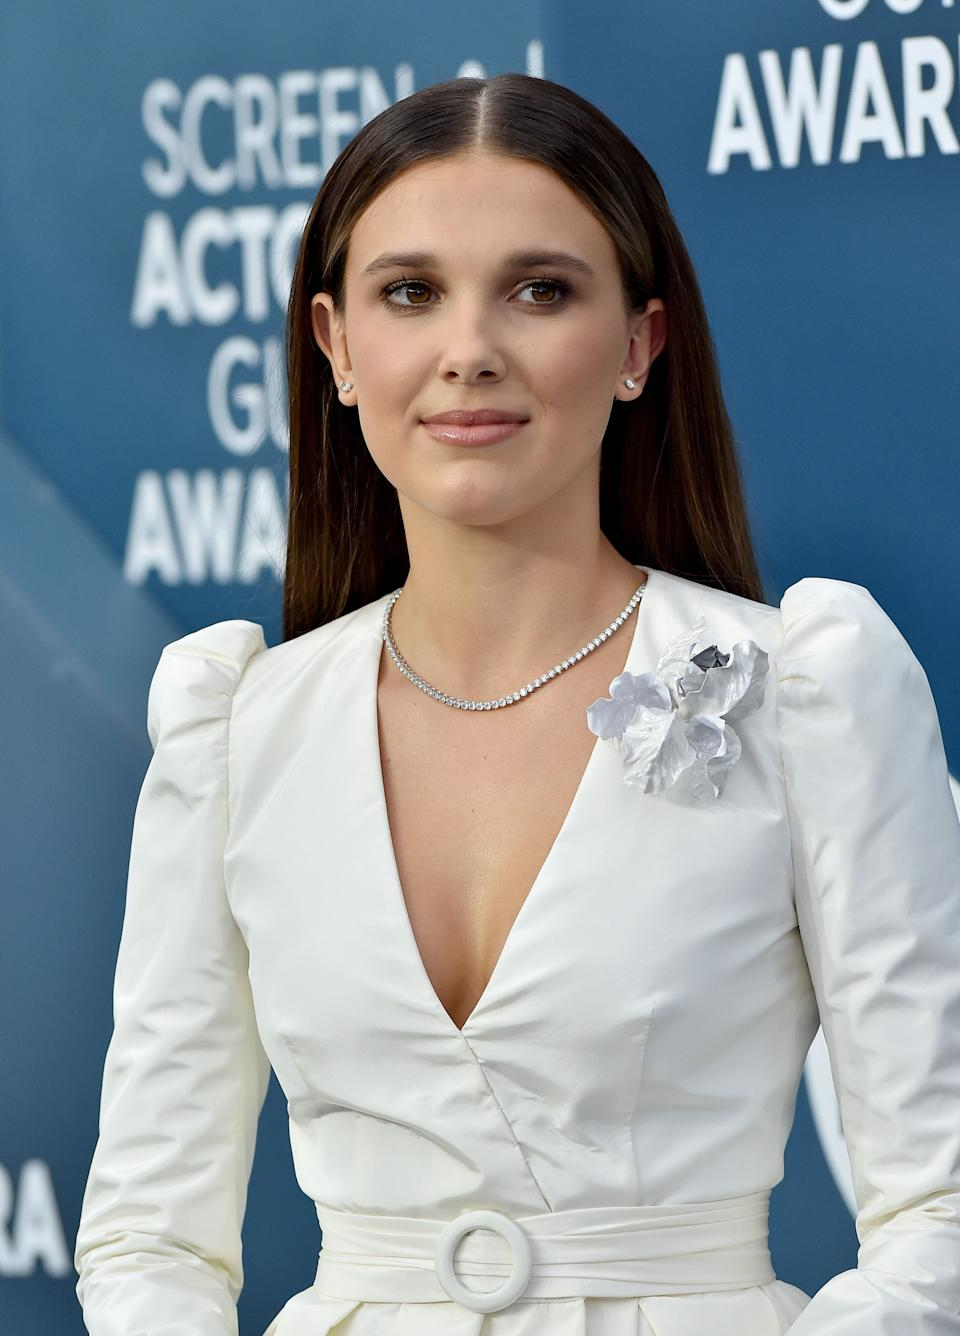 Millie Bobby Brown (Photo: Axelle/Bauer-Griffin via Getty Images)